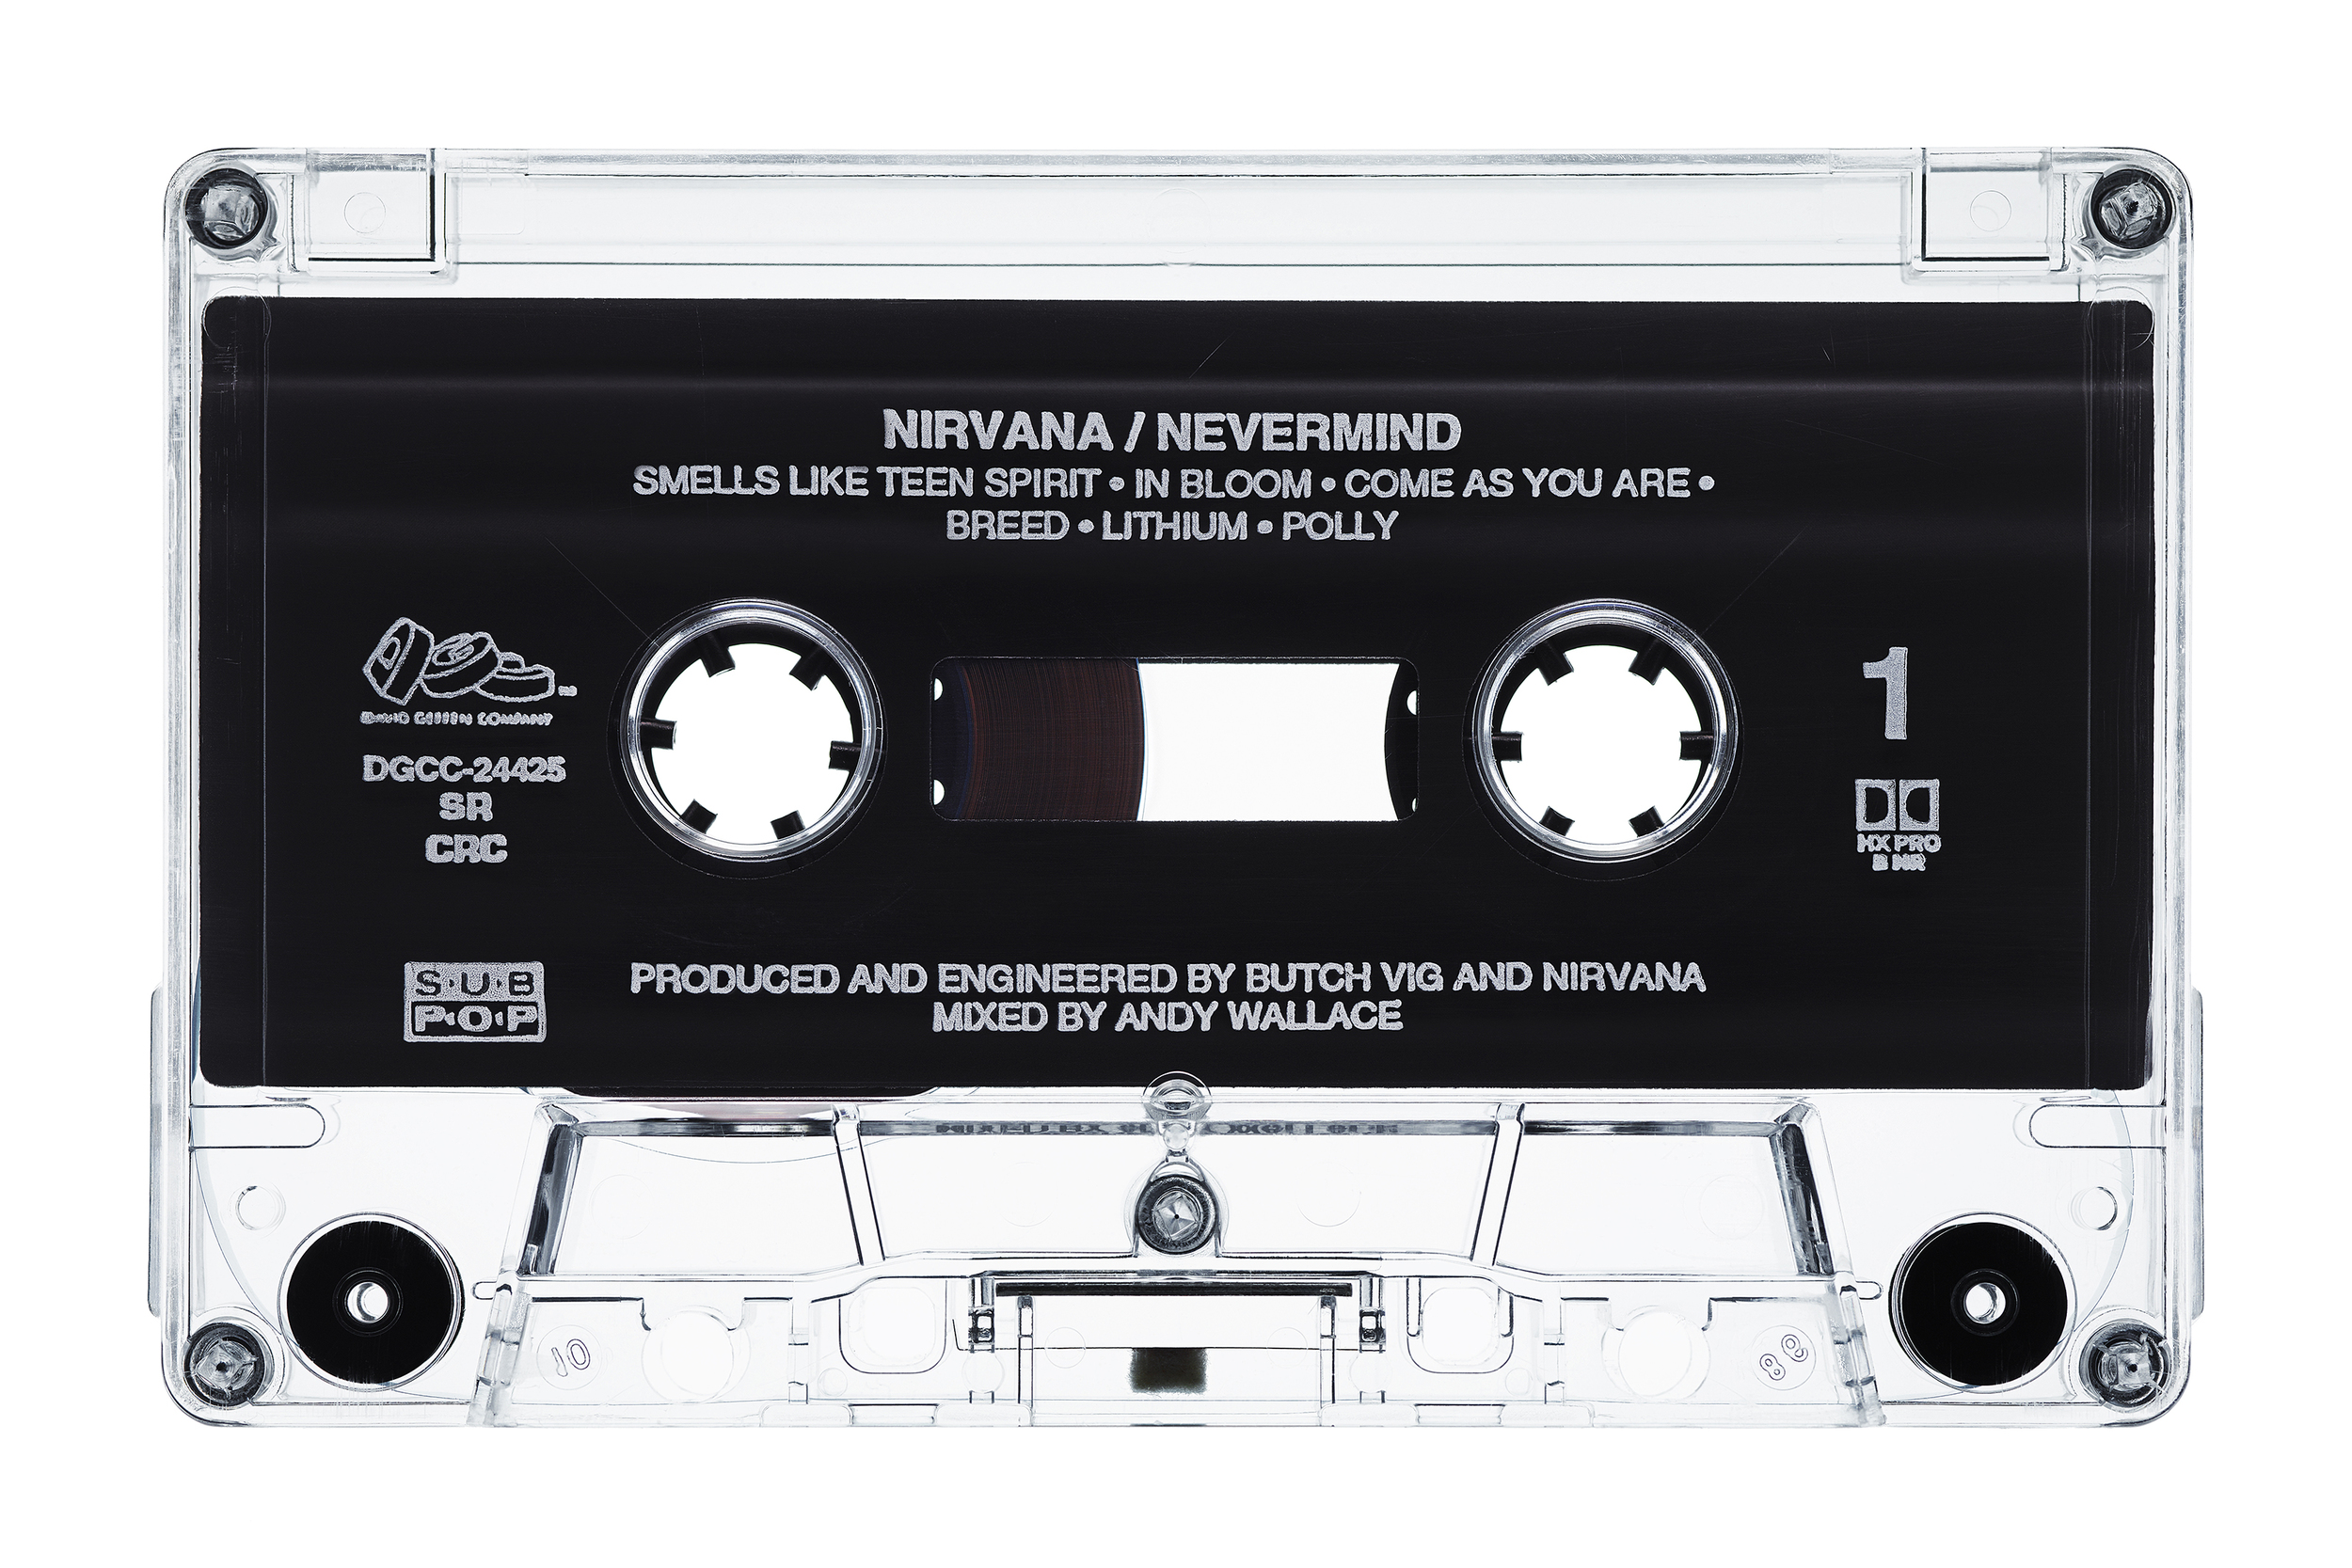 Nirvana - Nevermind  Available through  Clic Gallery  in New York, St. Barth, Marin & East Hampton   Inquire about price